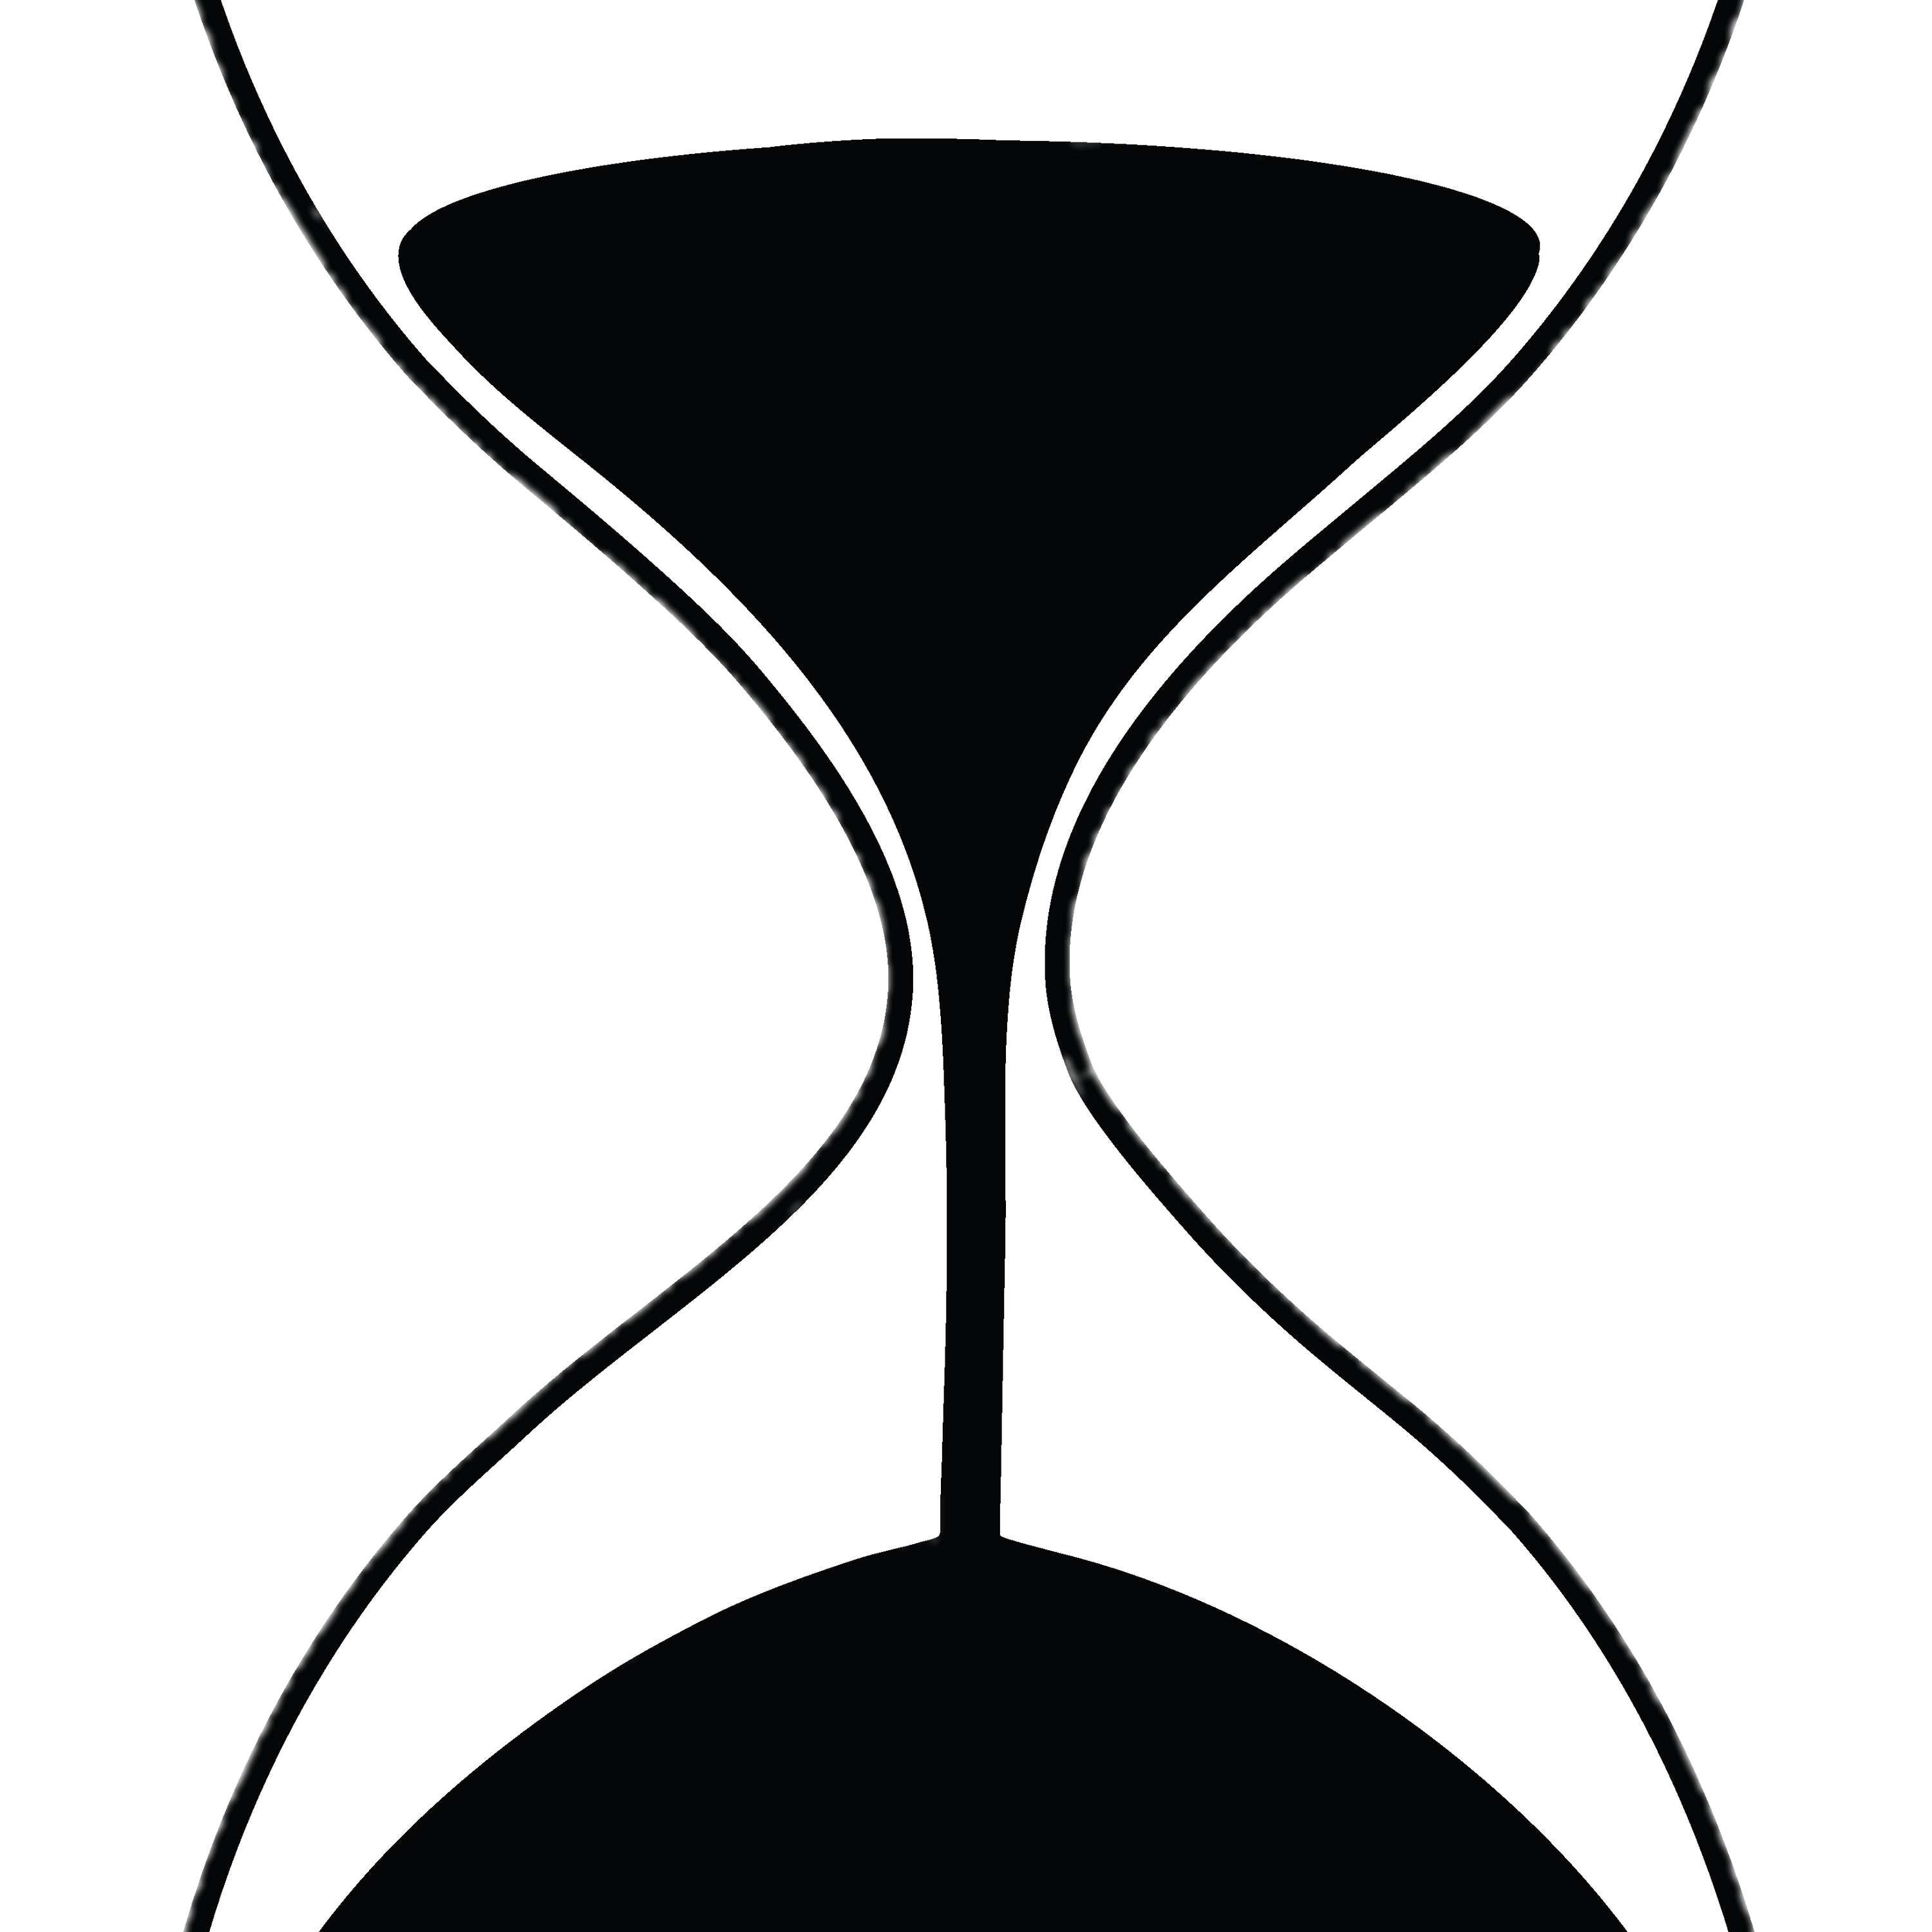 Hourglass clipart empty.  collection of transparent